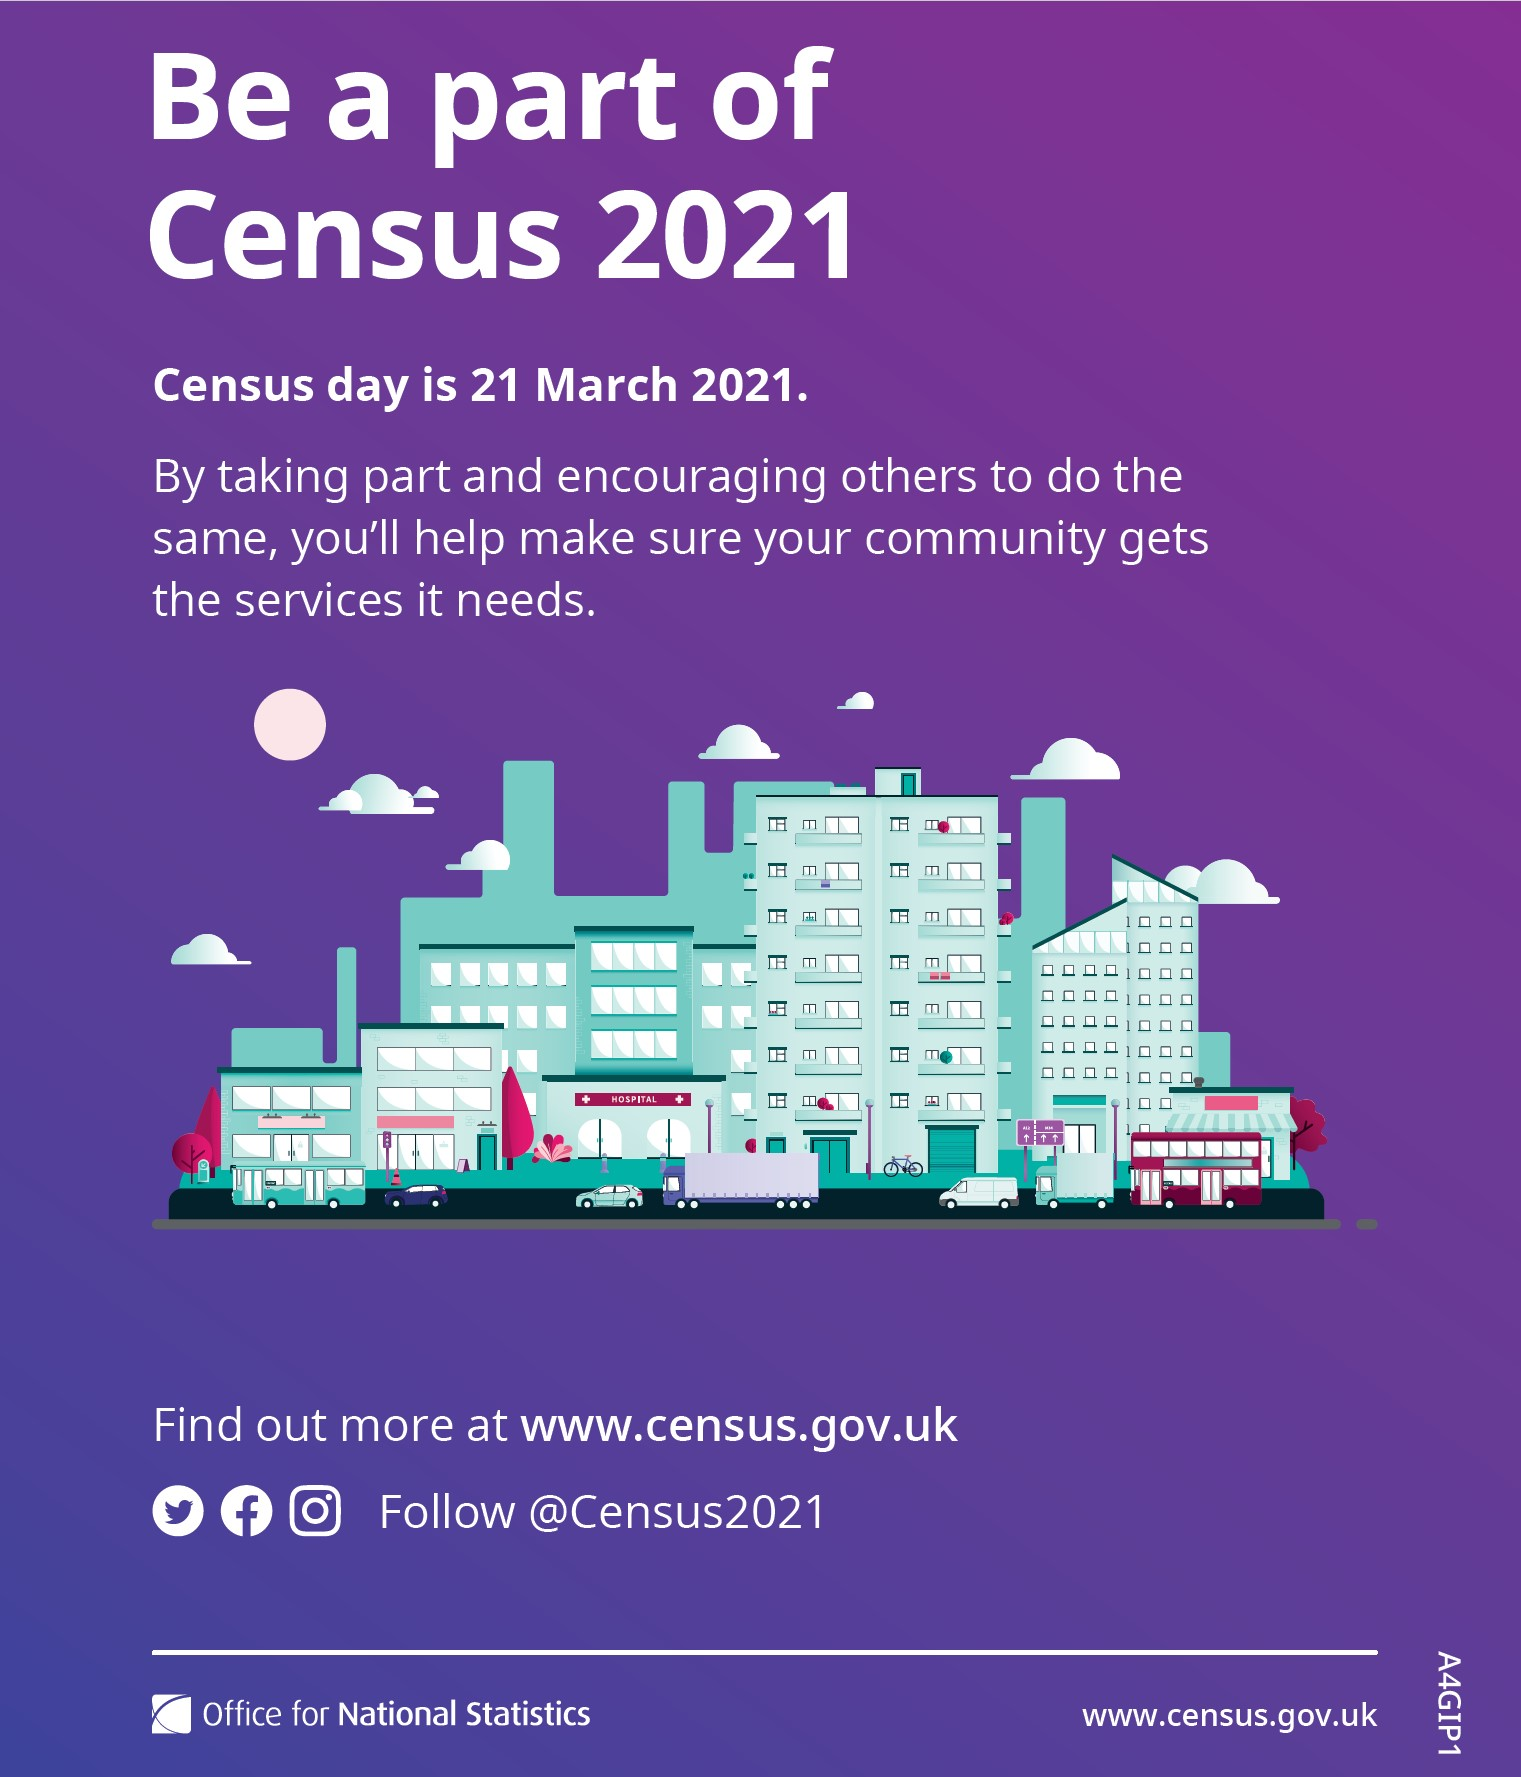 census poster 2021